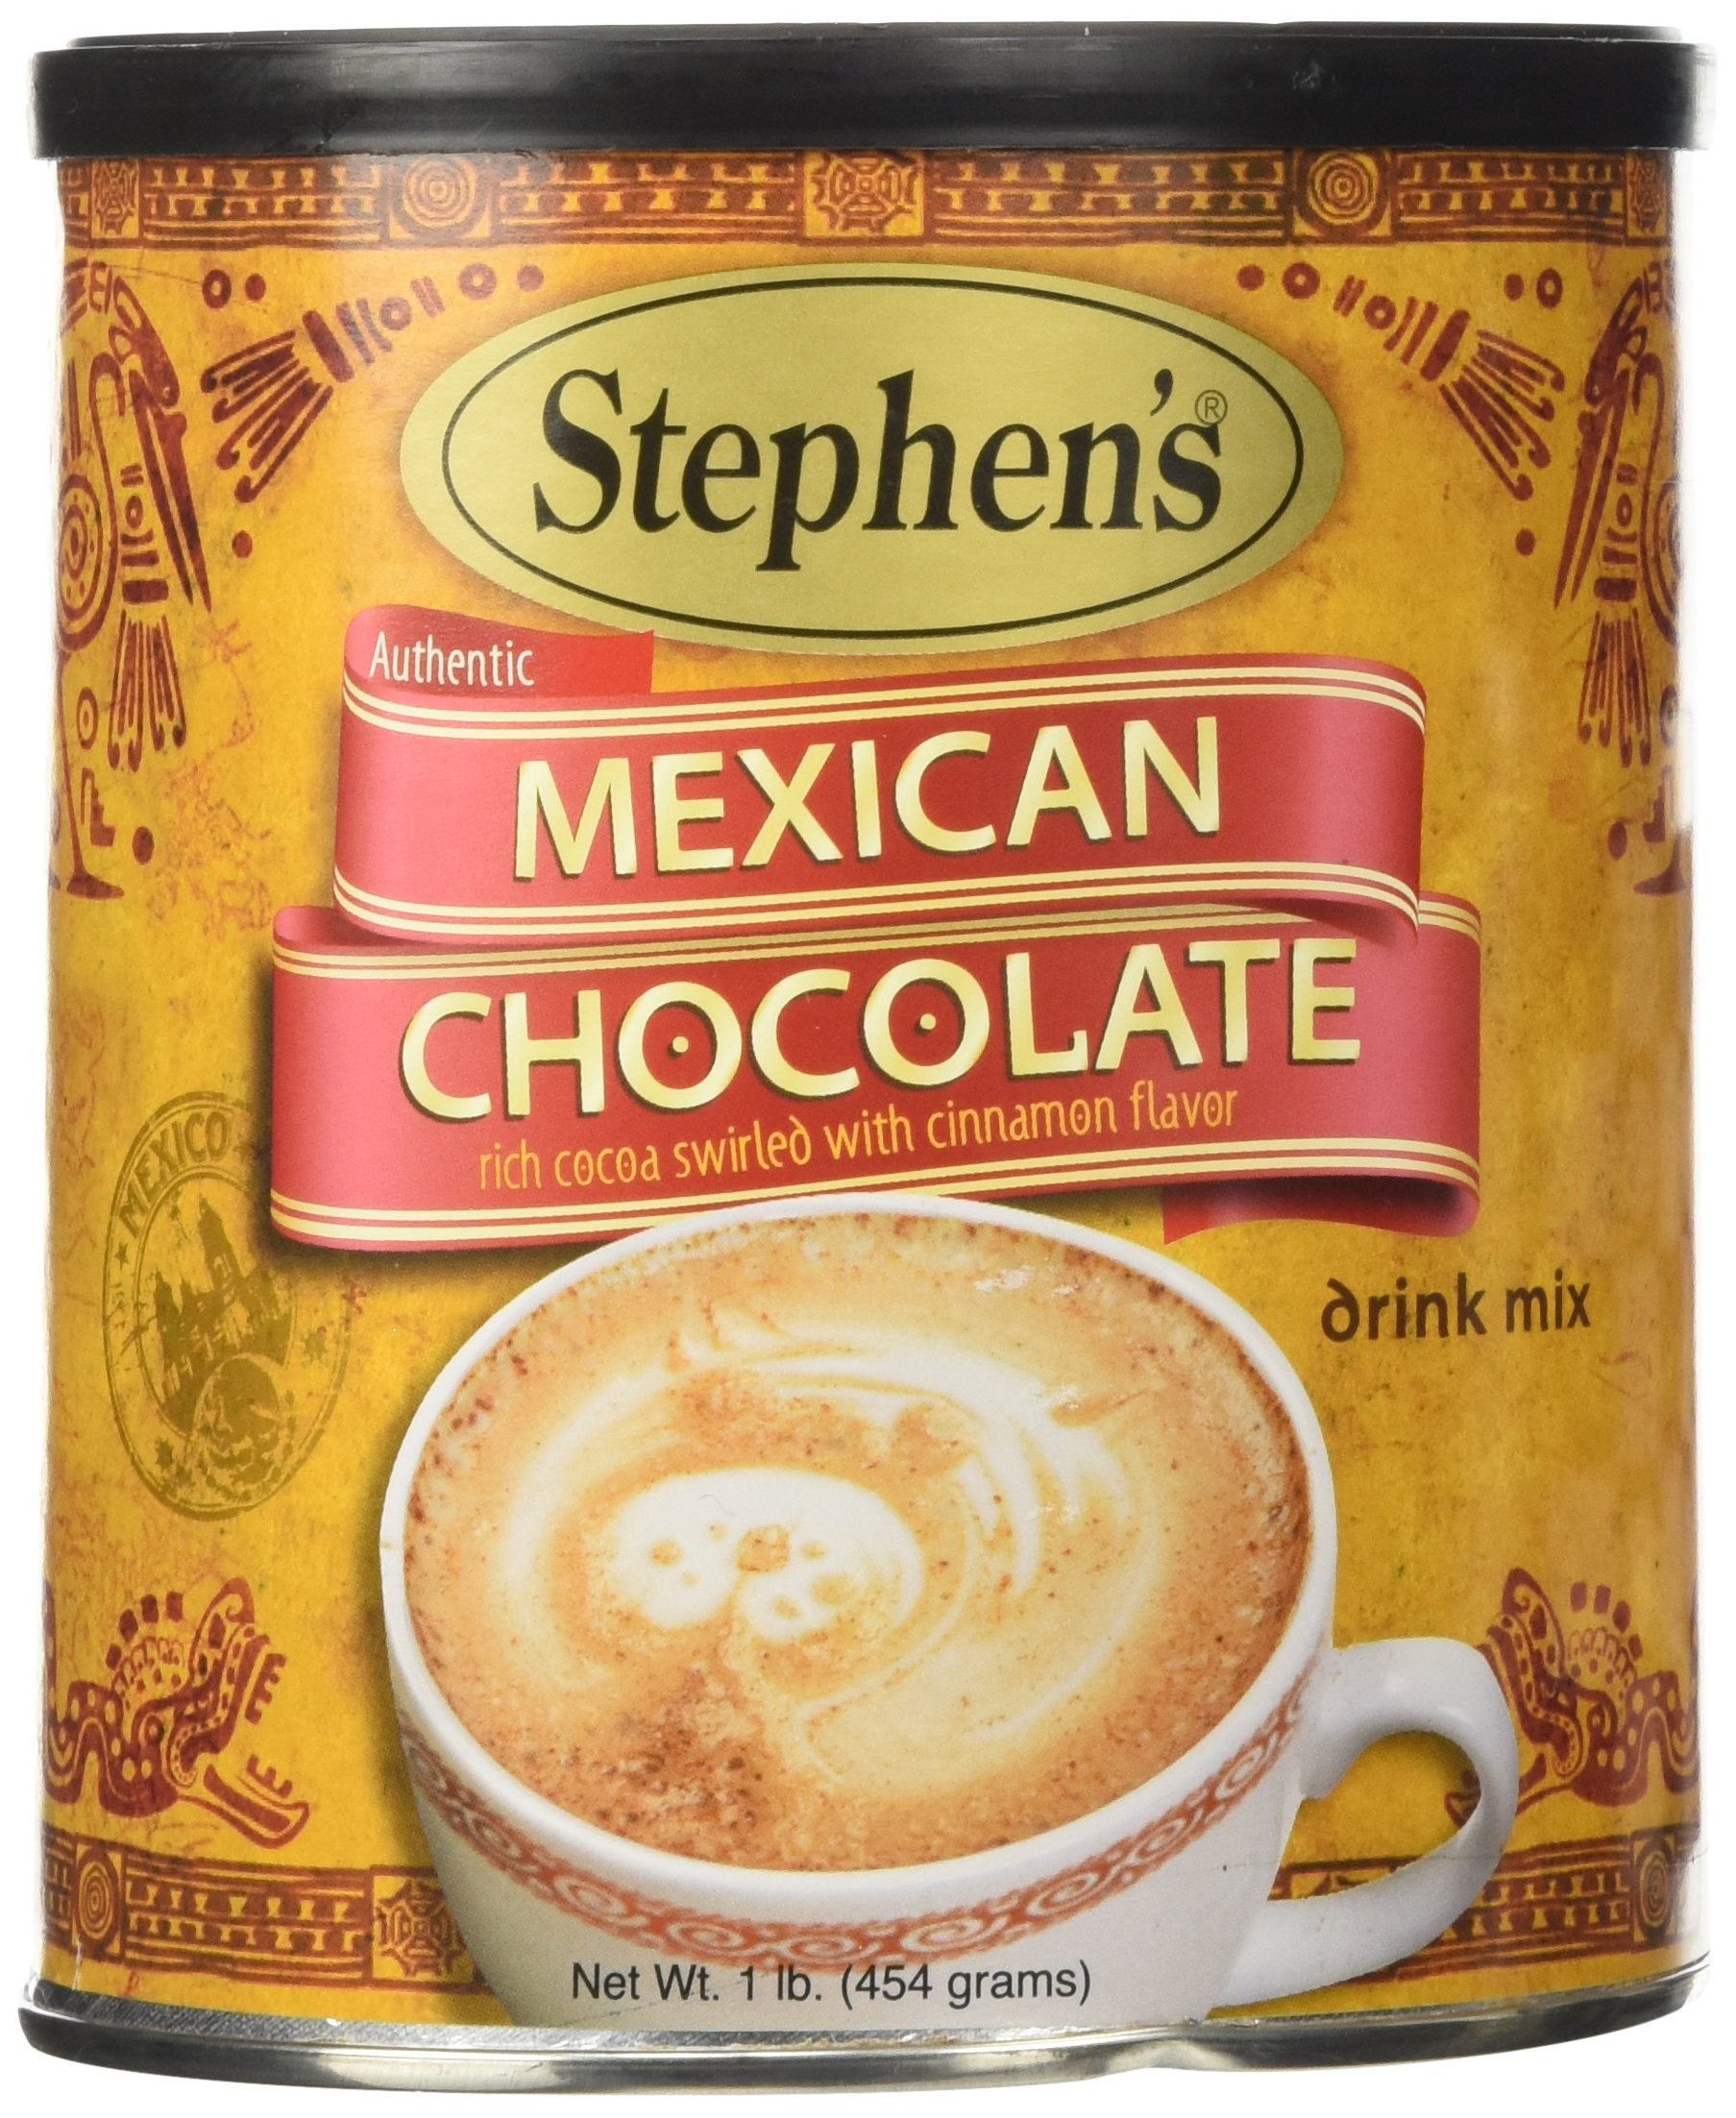 Stephen's Gourmet Hot Cocoa, Mexican Chocolate, 16 OZ (Pack - 1)